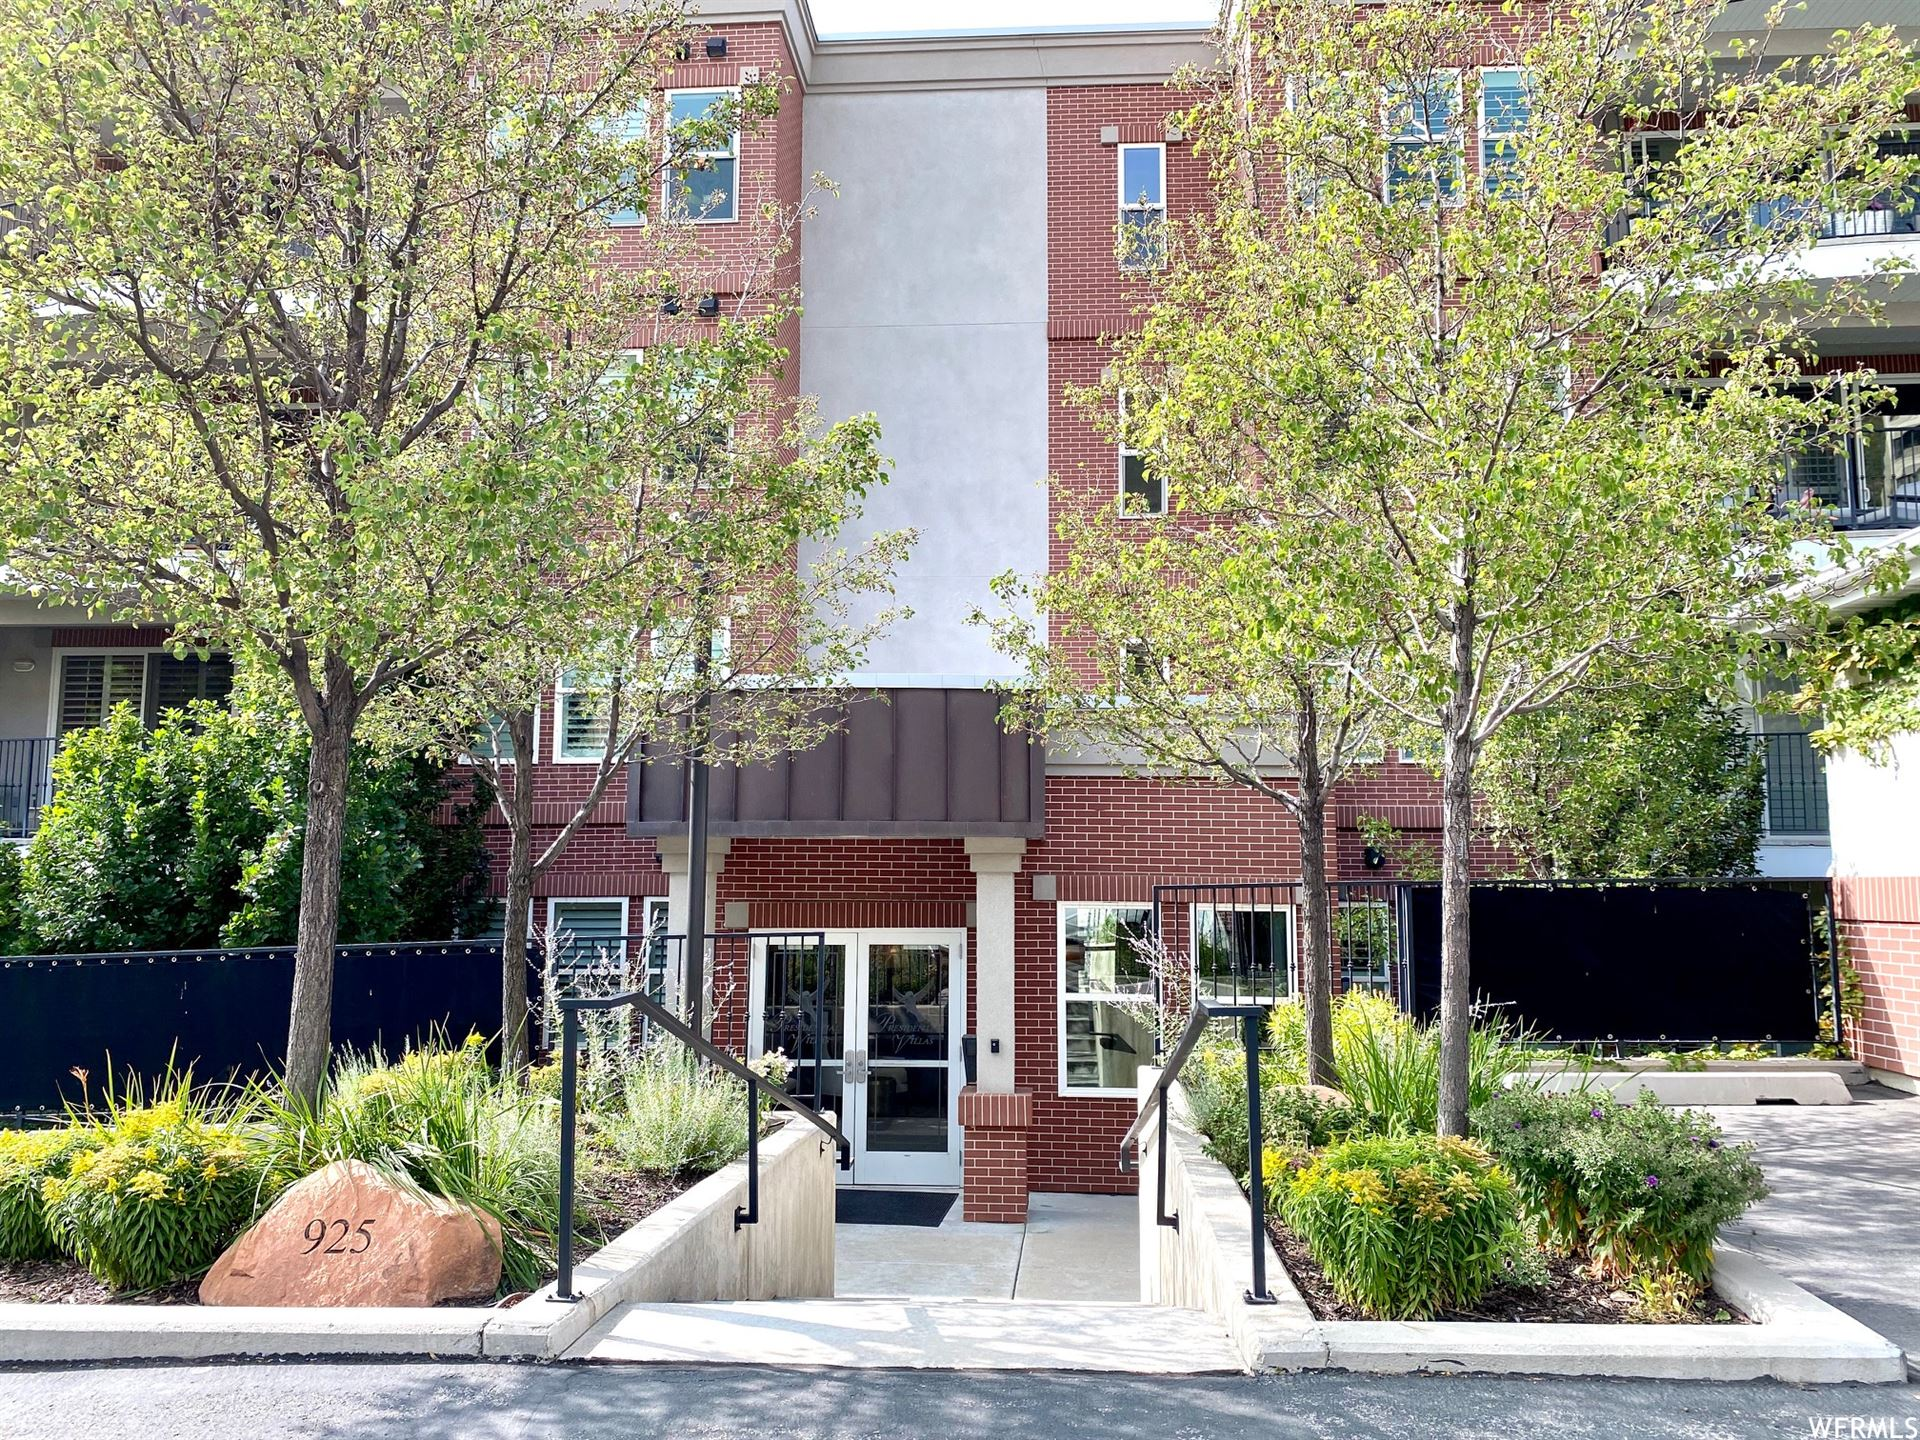 Photo of 925 S DONNER WAY E #1200, Salt Lake City, UT 84108 (MLS # 1704105)